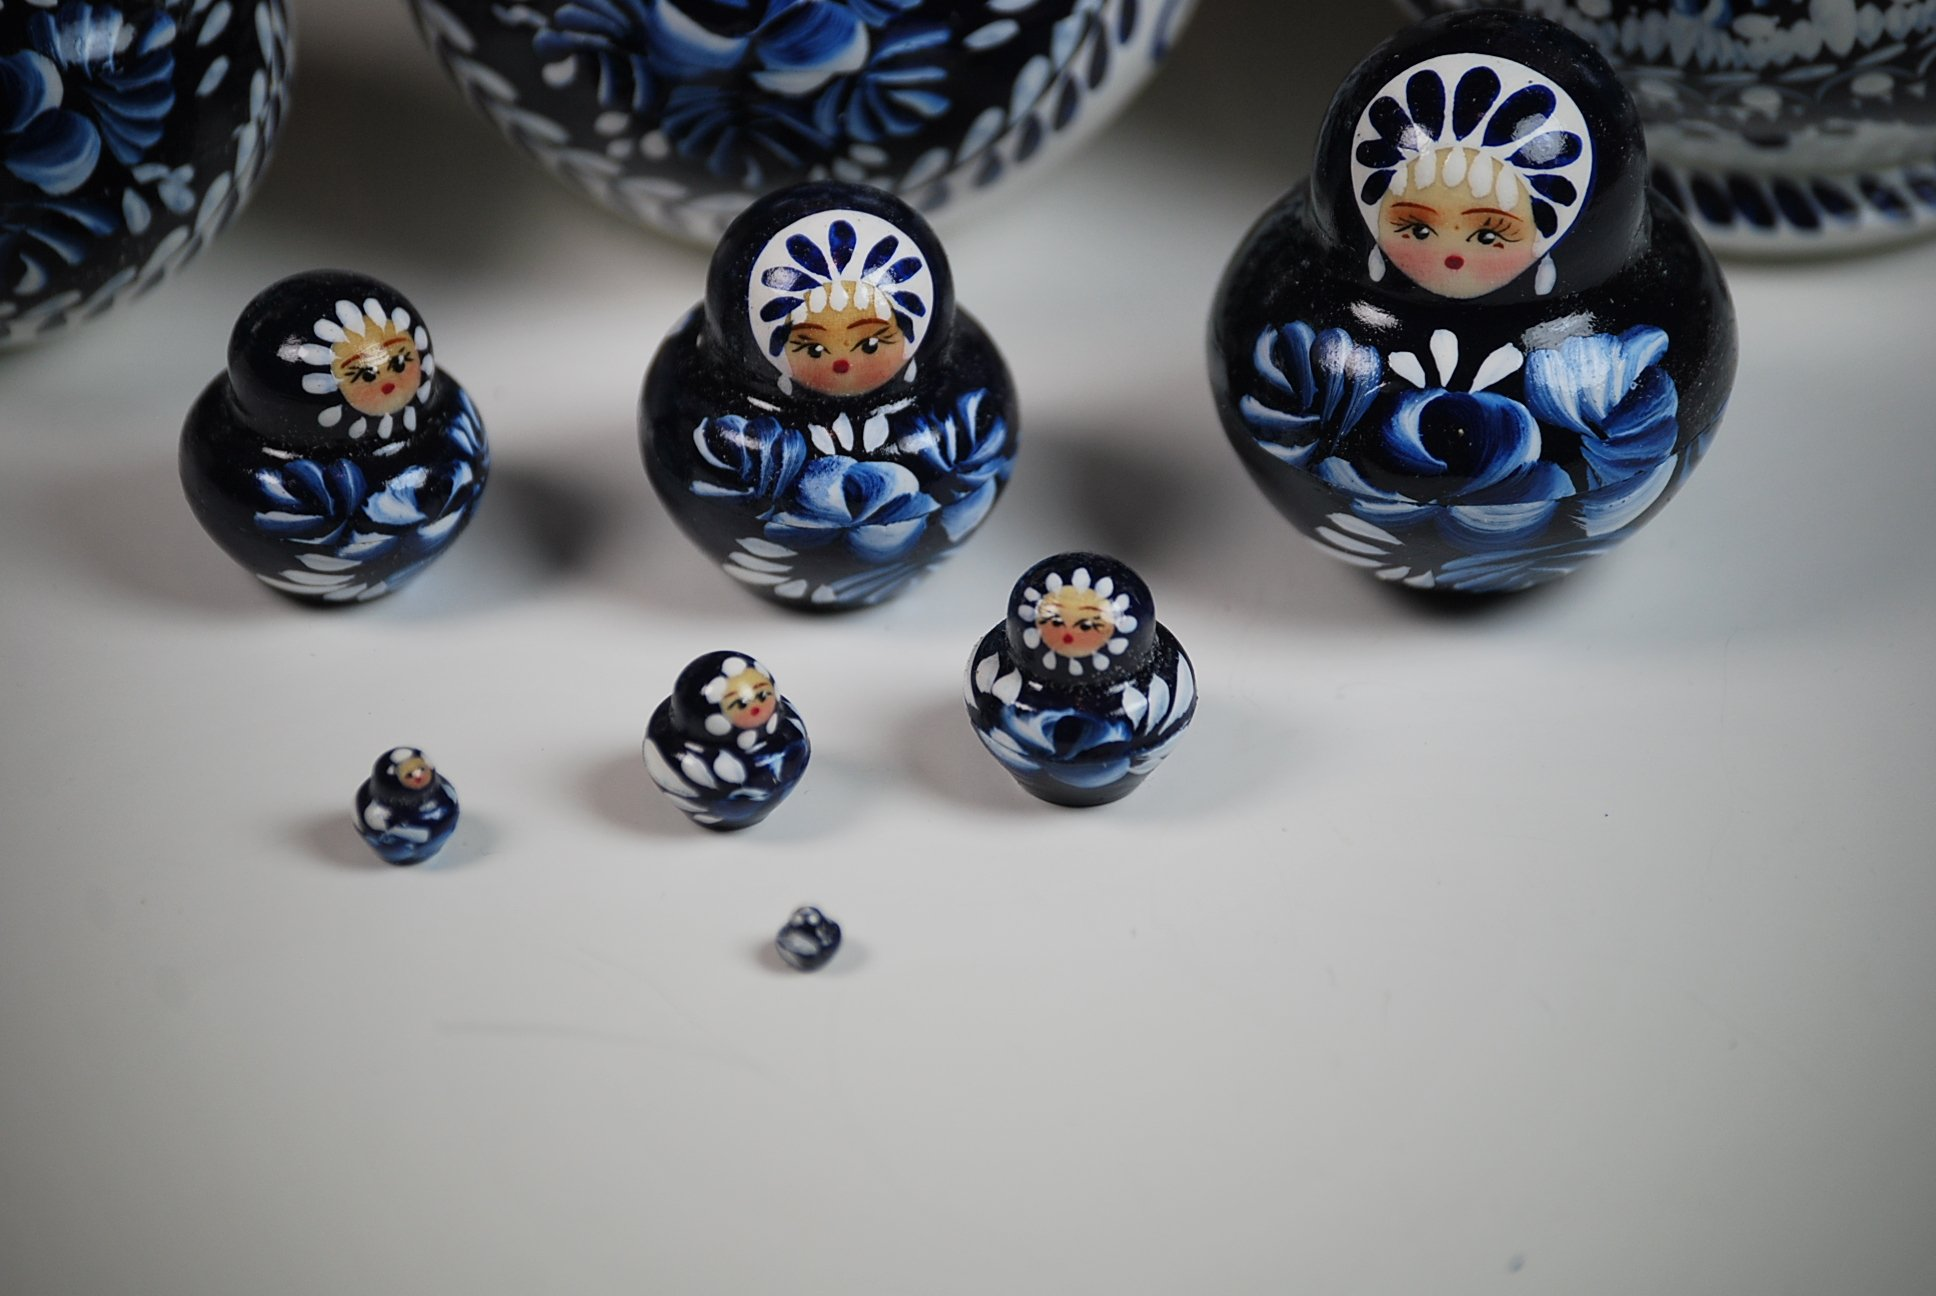 Unique Museum Quality Artist Signed Russian Hand Painted Nesting Dolls Set of 10 pcs Christmas Gift by Gabriella's Gifts (Image #4)